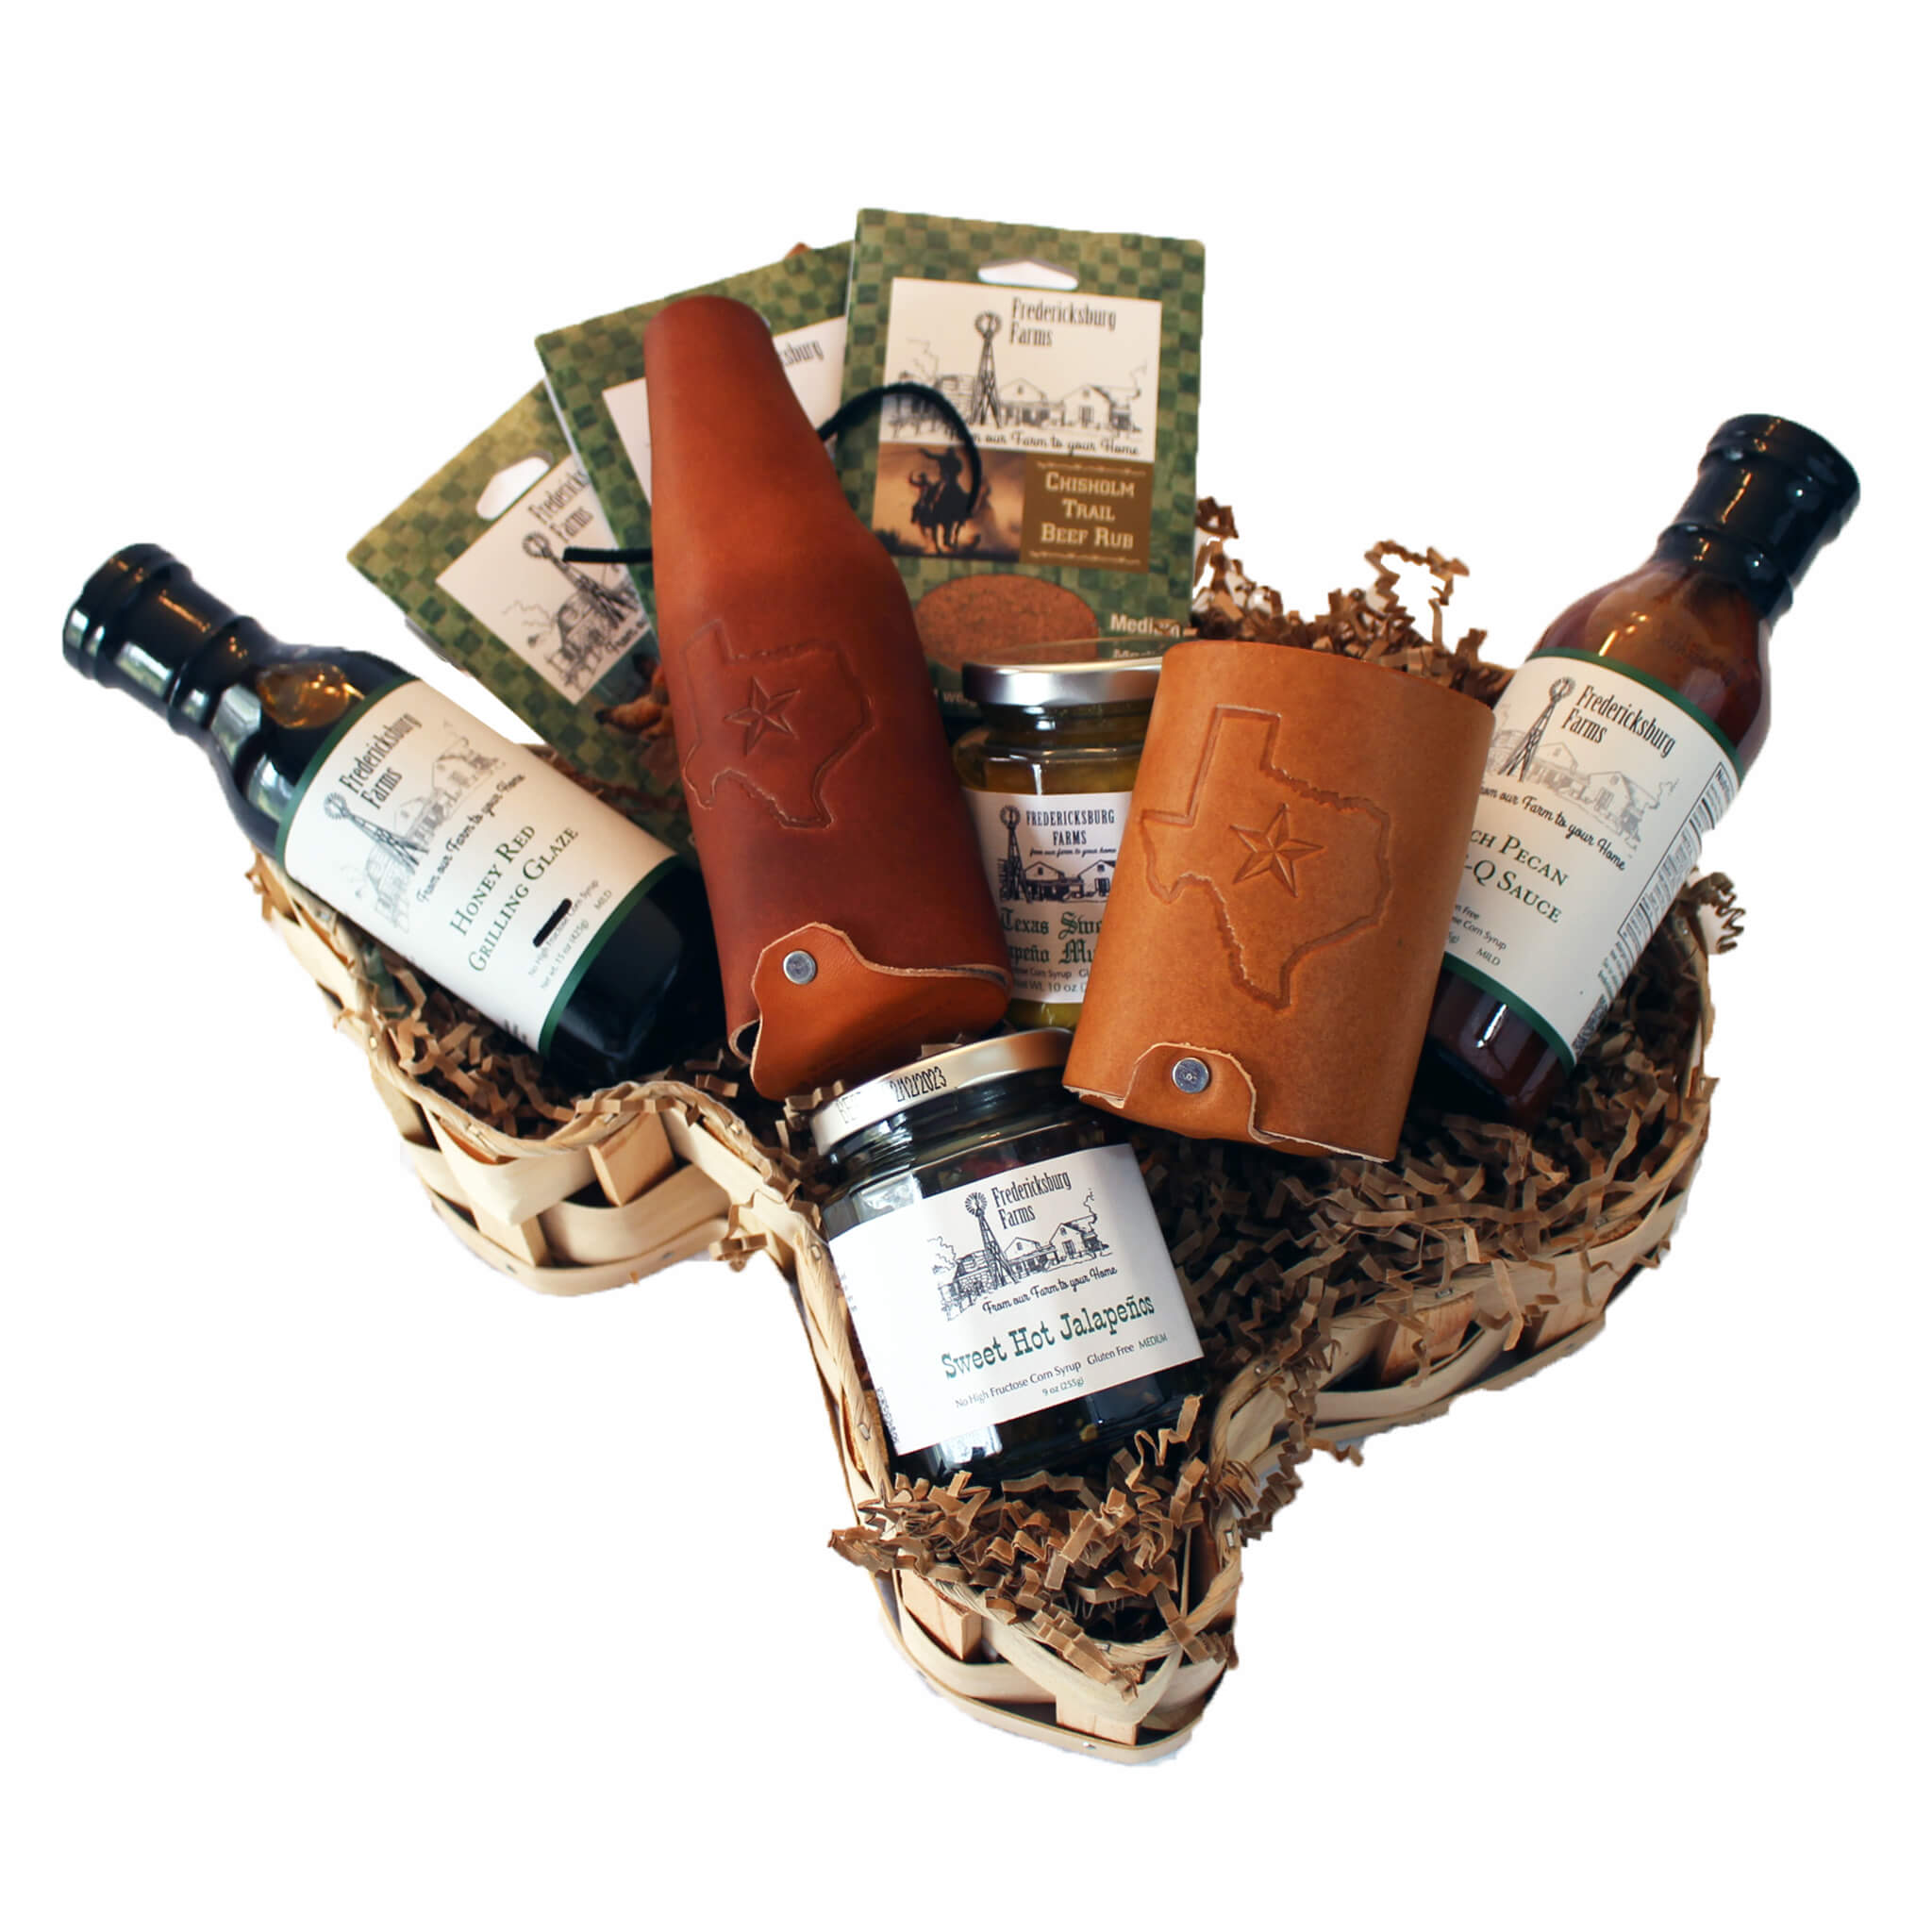 Texas BBQ Starter Set Gift Basket - Large